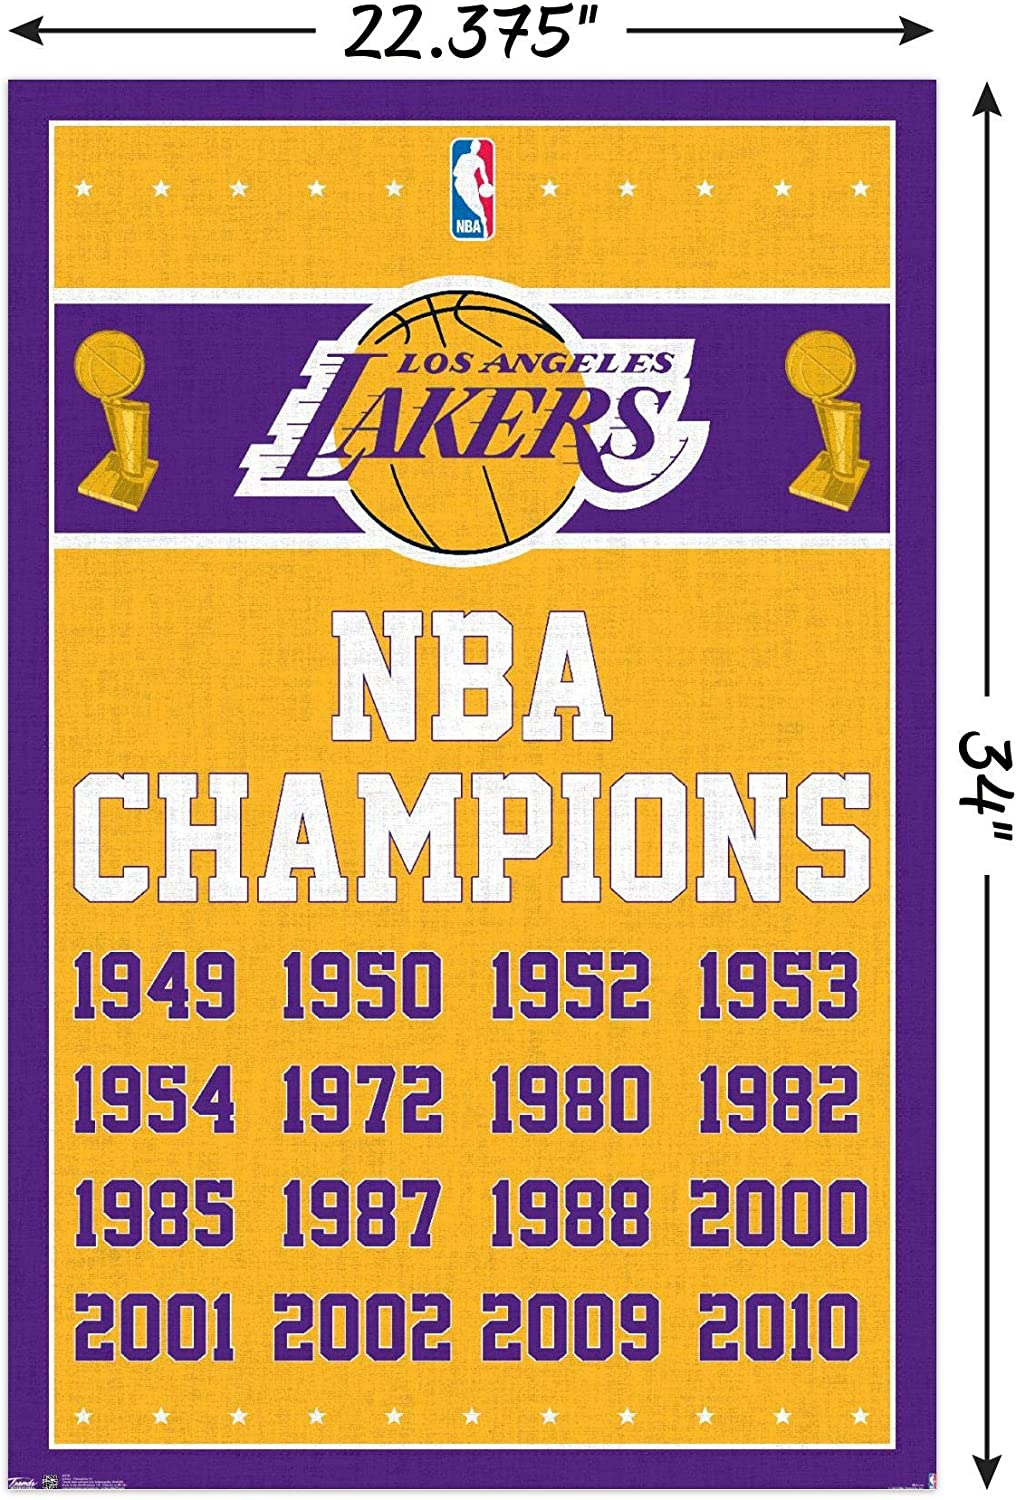 Kobe Bryant Los Angeles Lakers 2009-2010 NBA Back to Back Champions Team Photo Size: 8 x 10